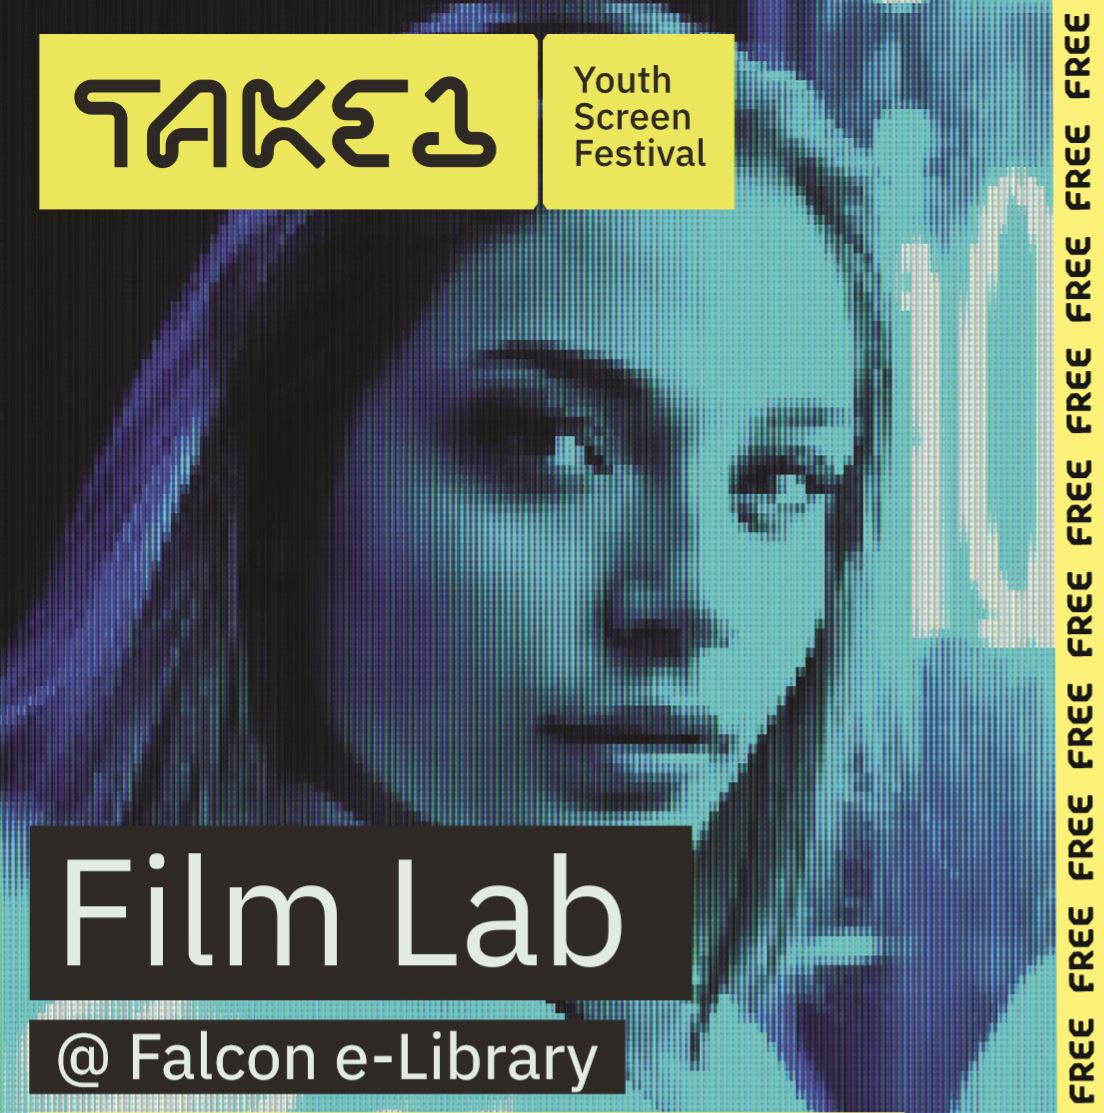 Film Lab Session 5